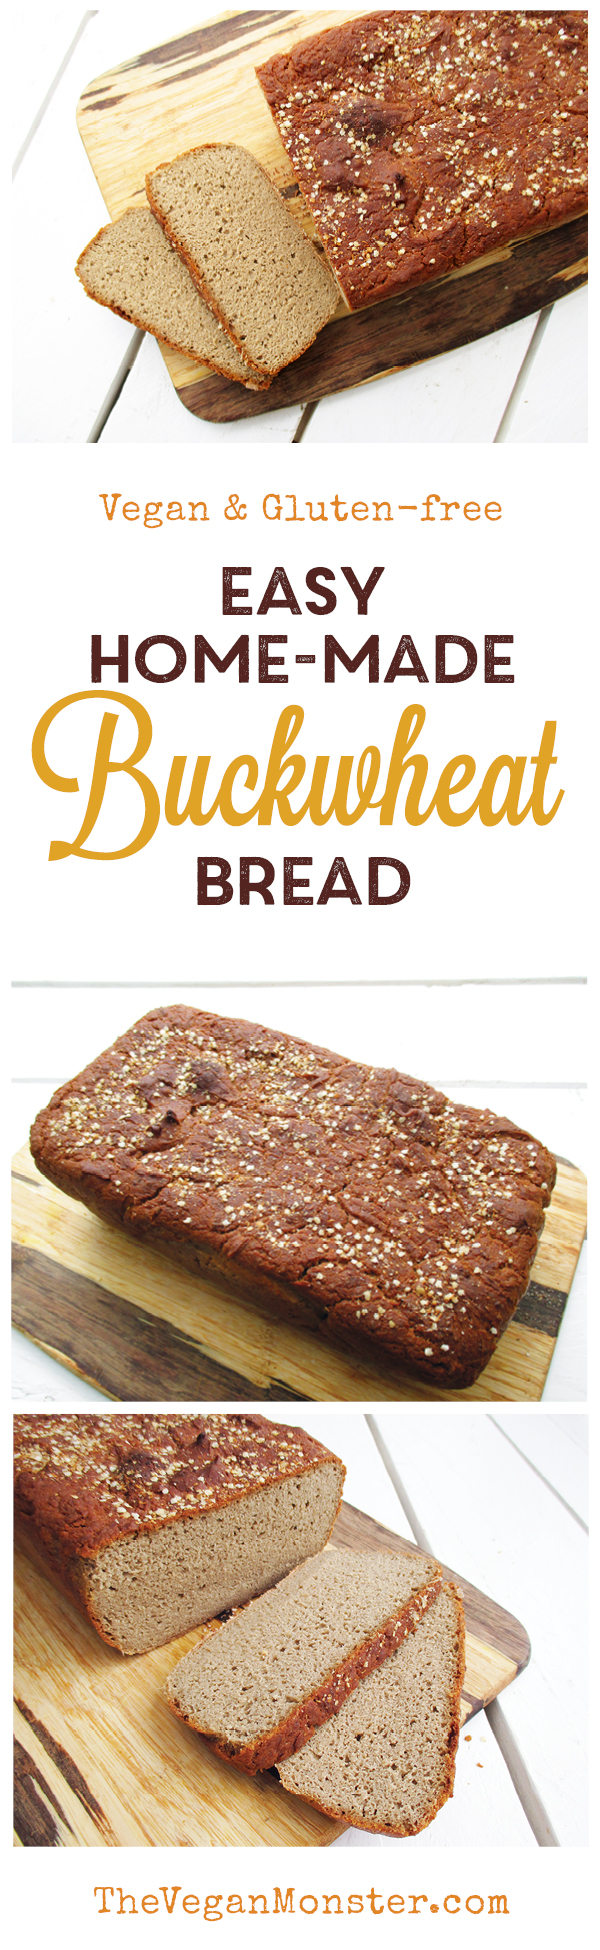 Easy Vegan Gluten-free Buckwheat Bread Recipe